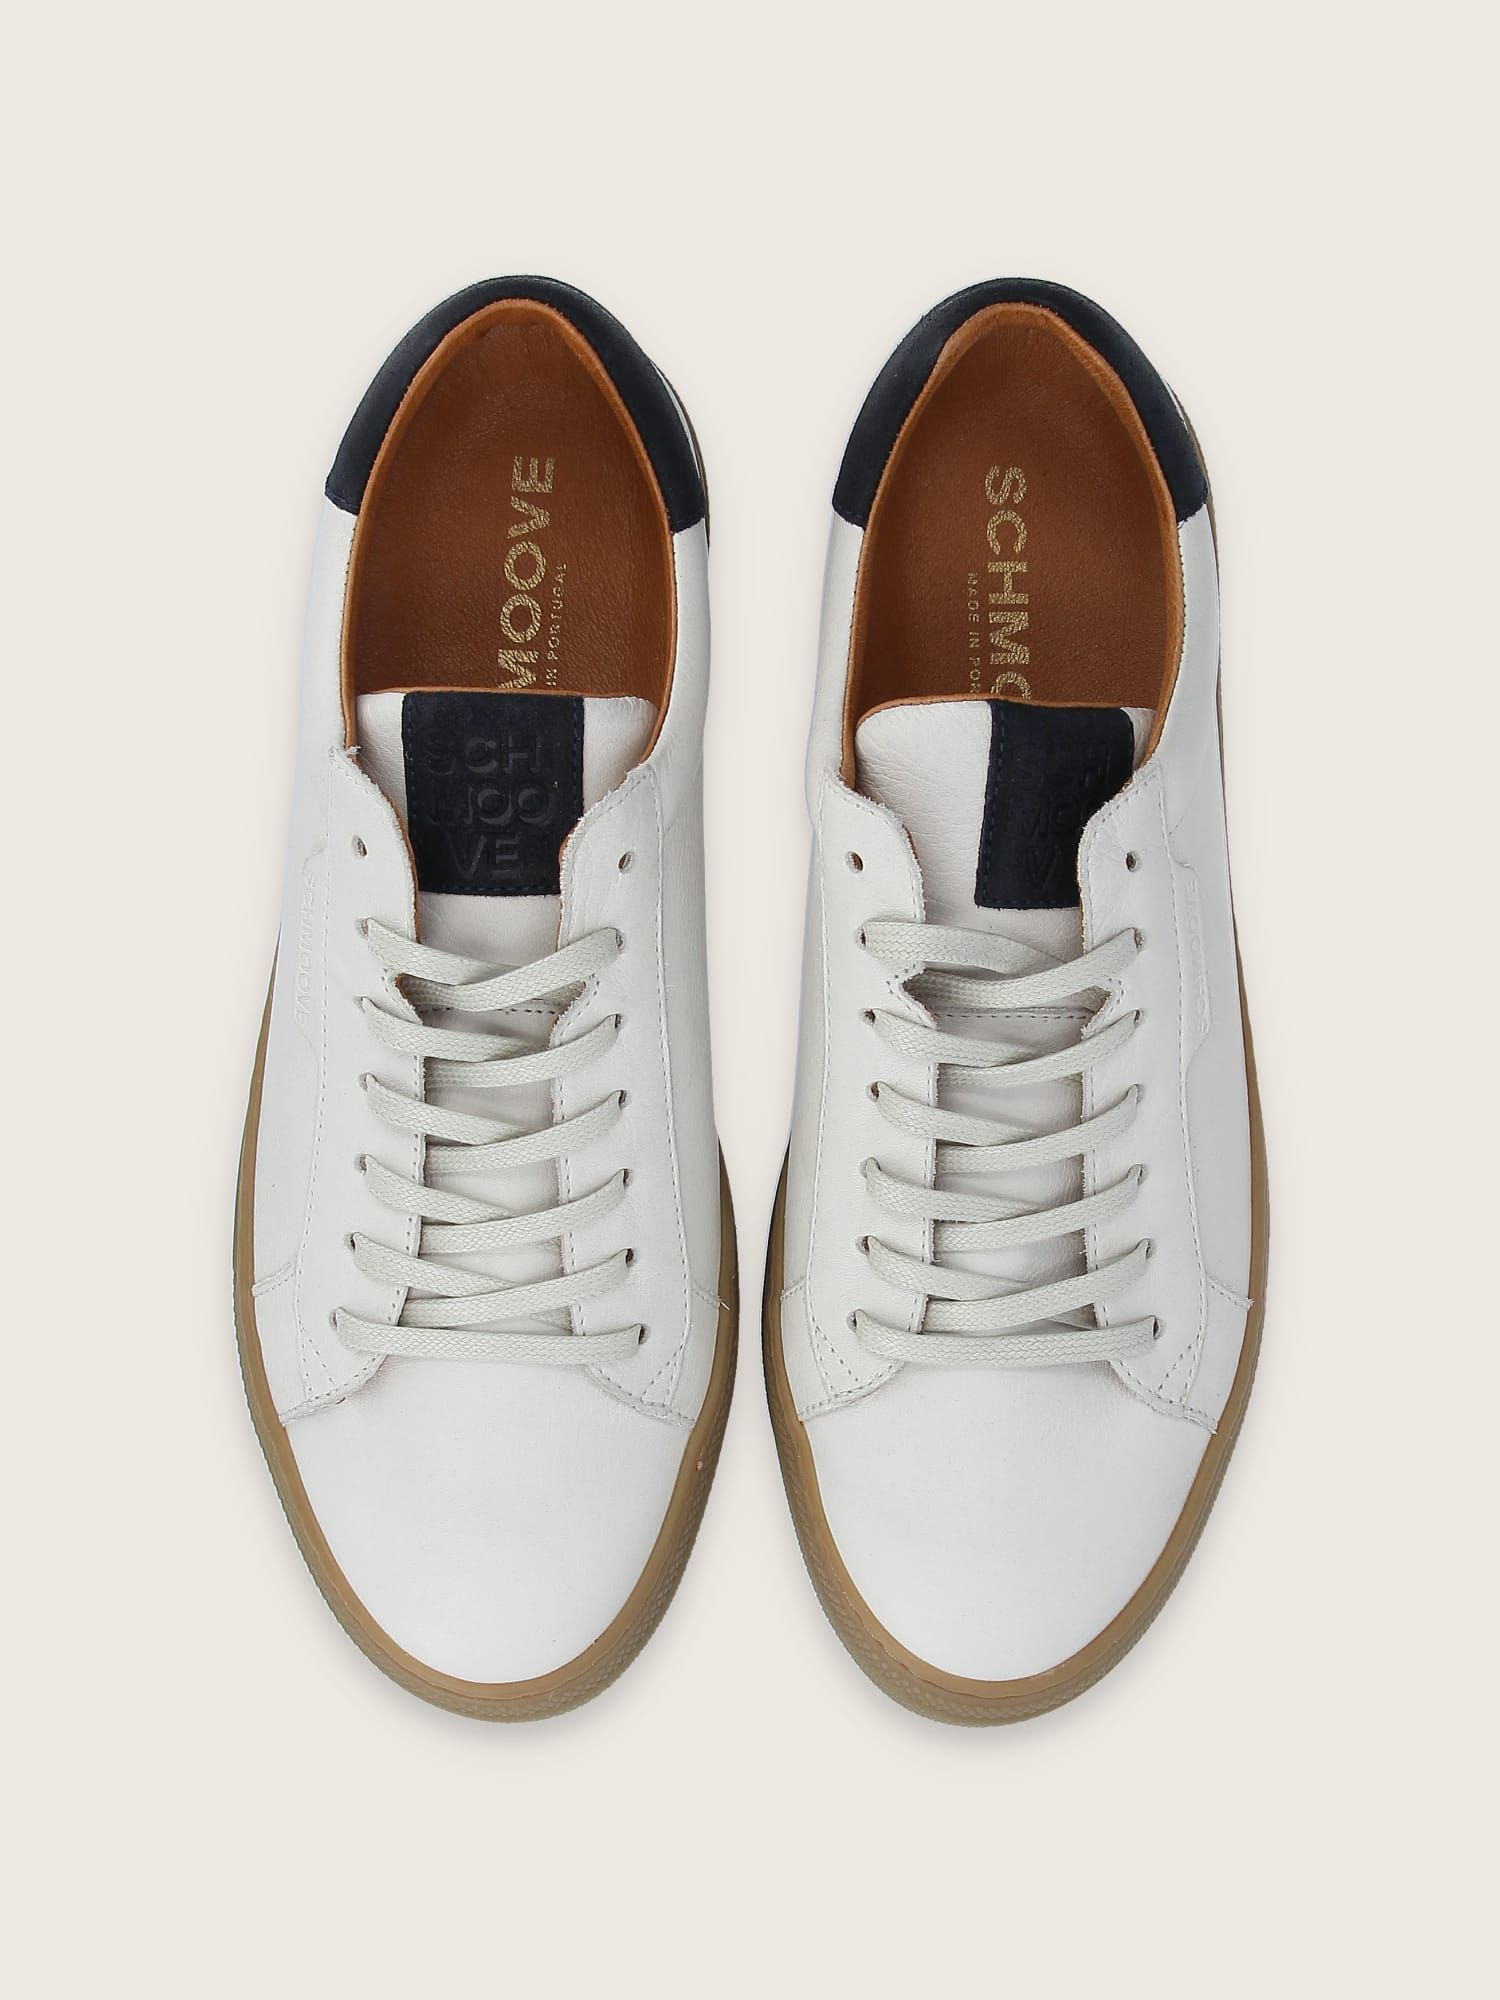 schmoove.fr SPARK CLAY - NAPPA/OIL SUEDE - OFF WHITE/NAVY